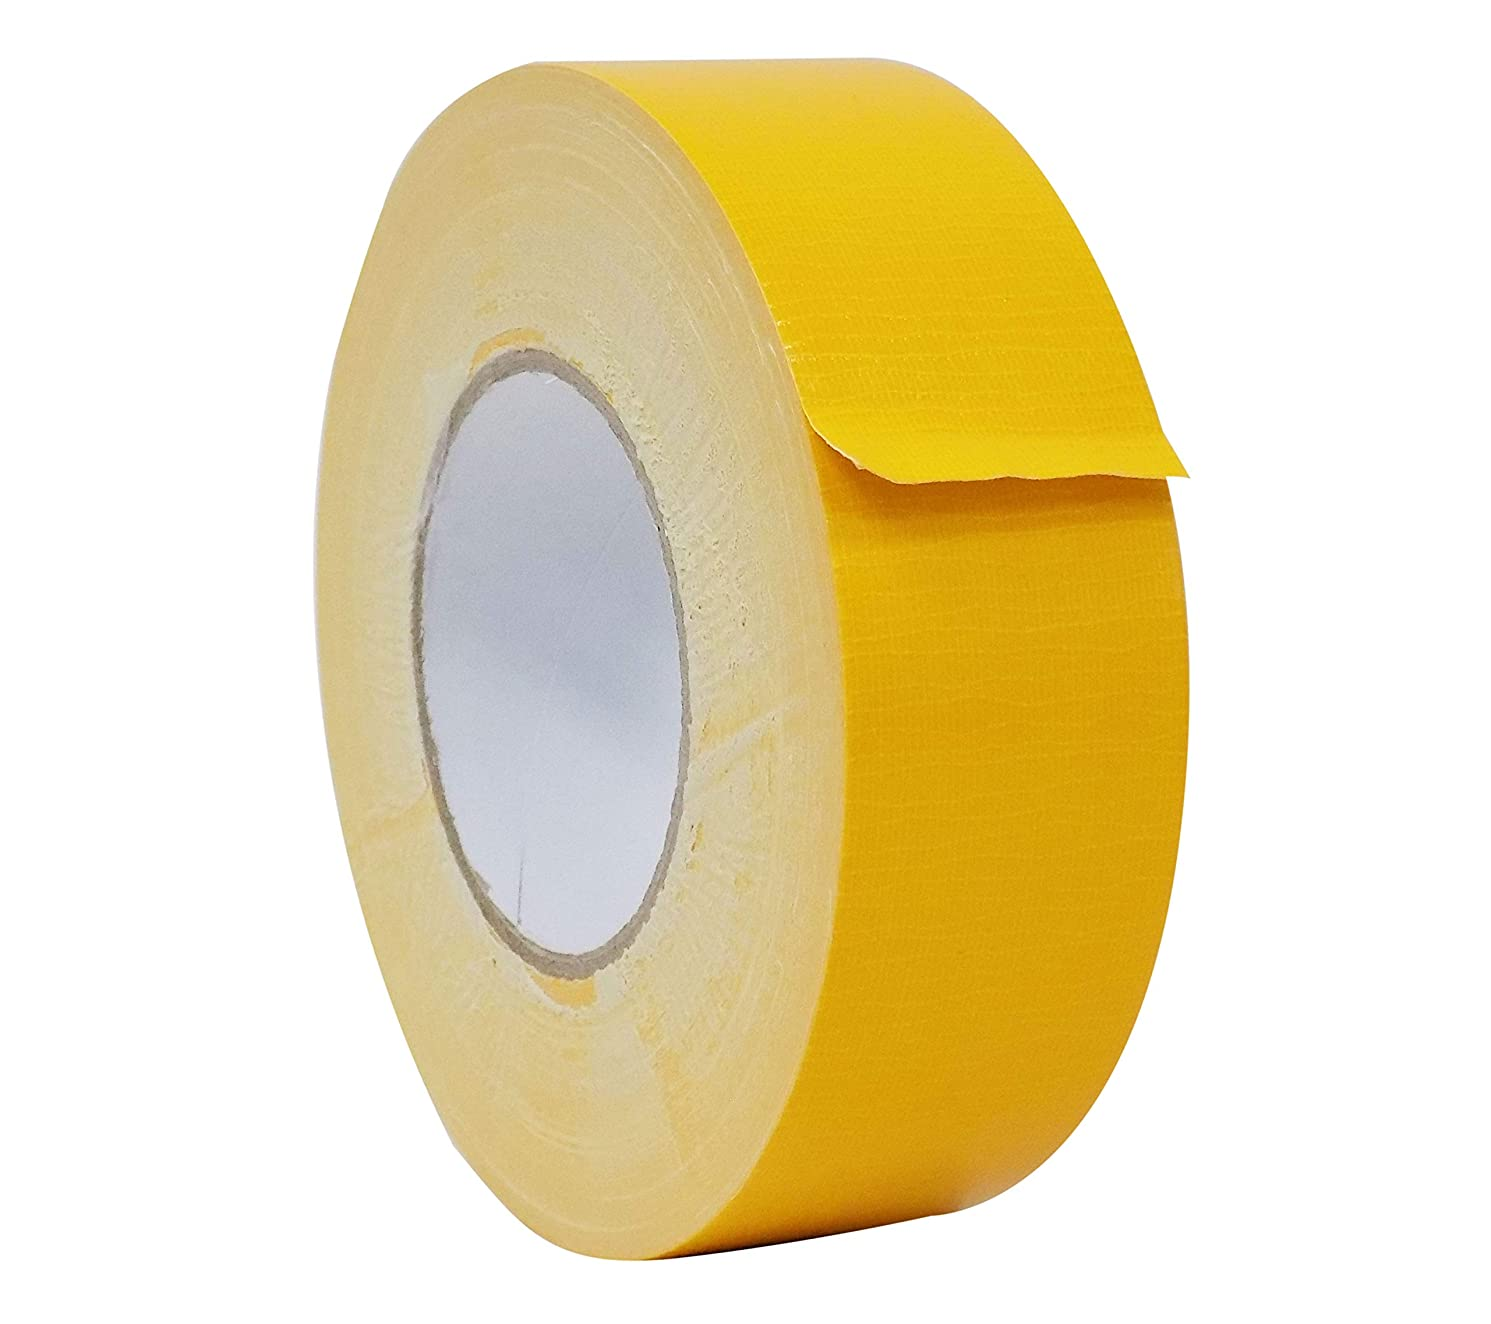 MAT Duct Tape Schoolbus Yellow Industrial Grade - 1/2 in. x 60 yds. - Waterproof, UV Resistant for Crafts, Home Improvement, Repairs, Projects (Available in Multiple Colors)